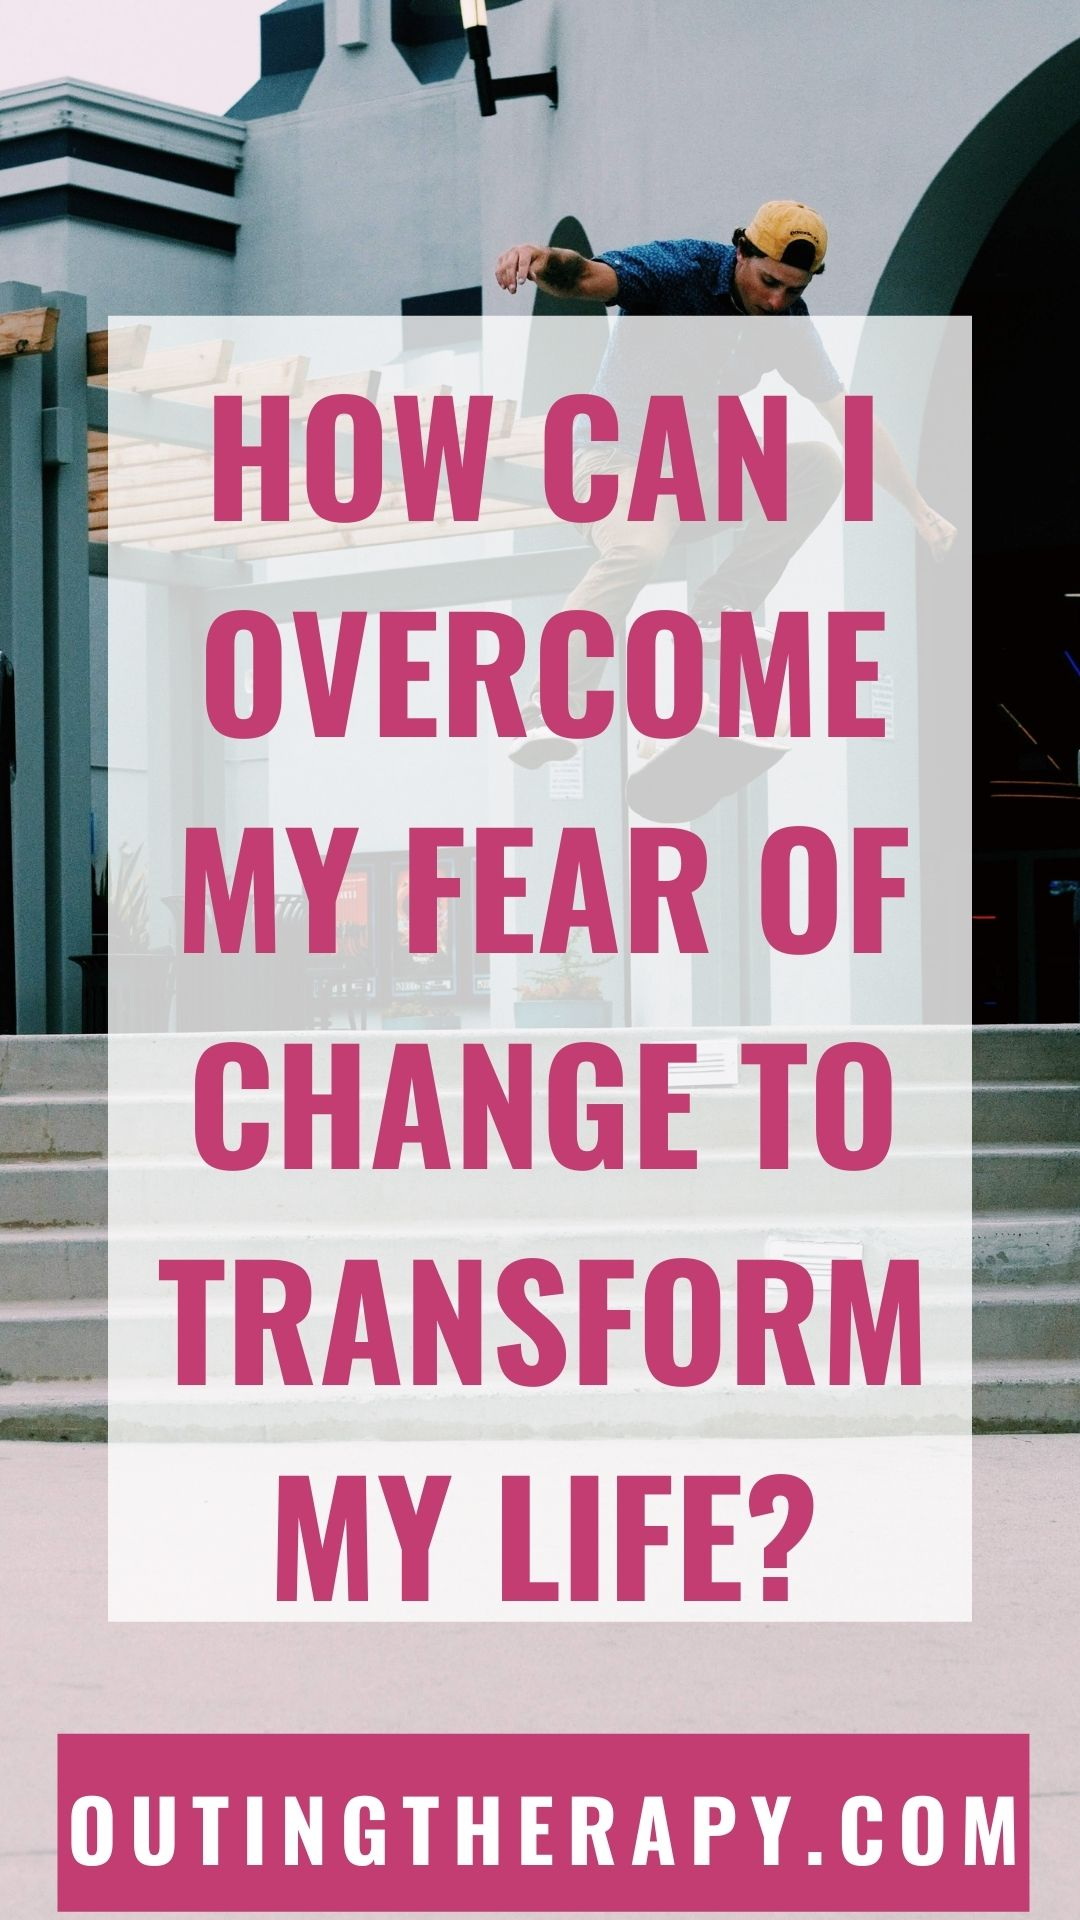 HOW CAN I OVERCOME MY FEAR OF CHANGE  TO COMPLETELY TRANSFORM MY LIFE?